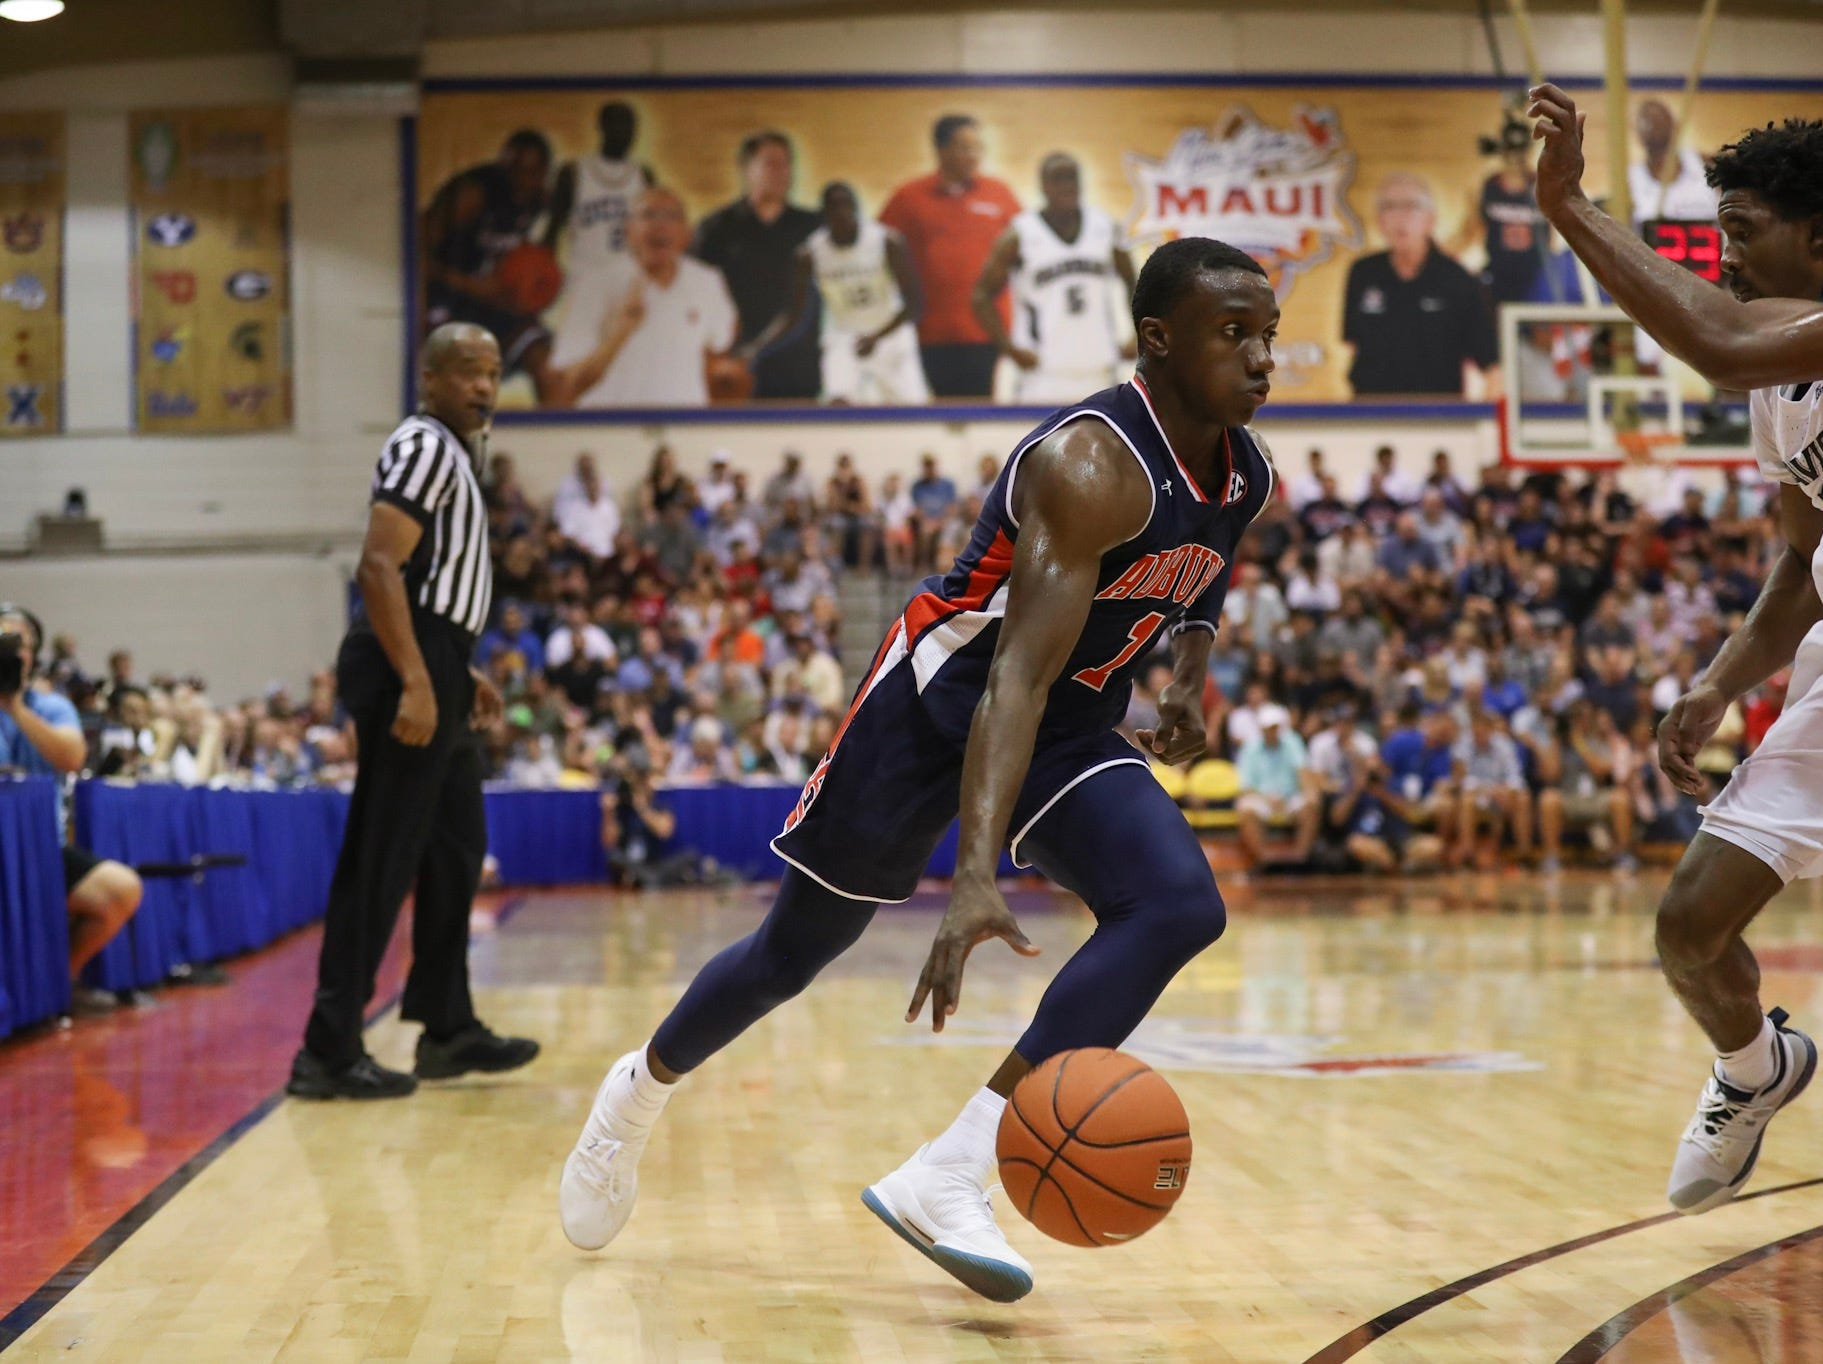 Auburn guard Jared Harper drives to the basket against Xavier during the Maui Invitational on Nov. 19, 2018.